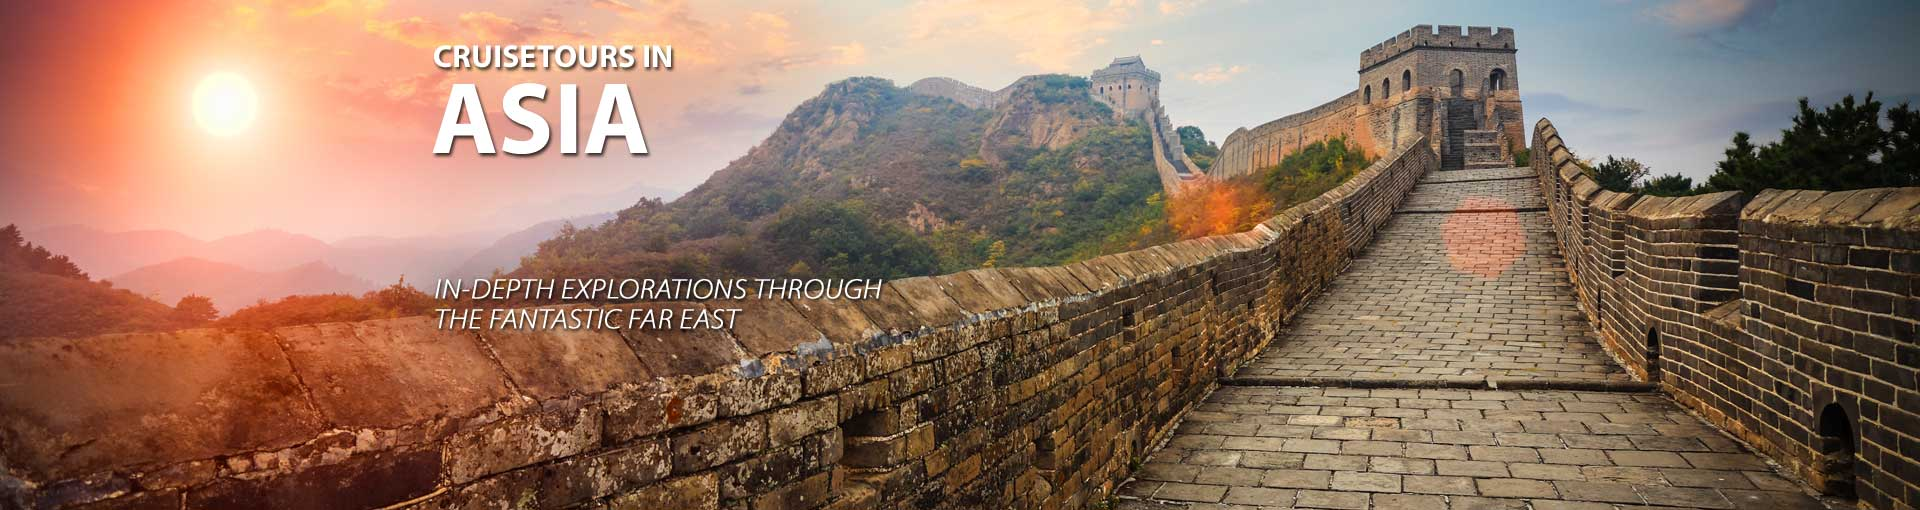 Asia Cruisetours In-depth Explorations of Far East